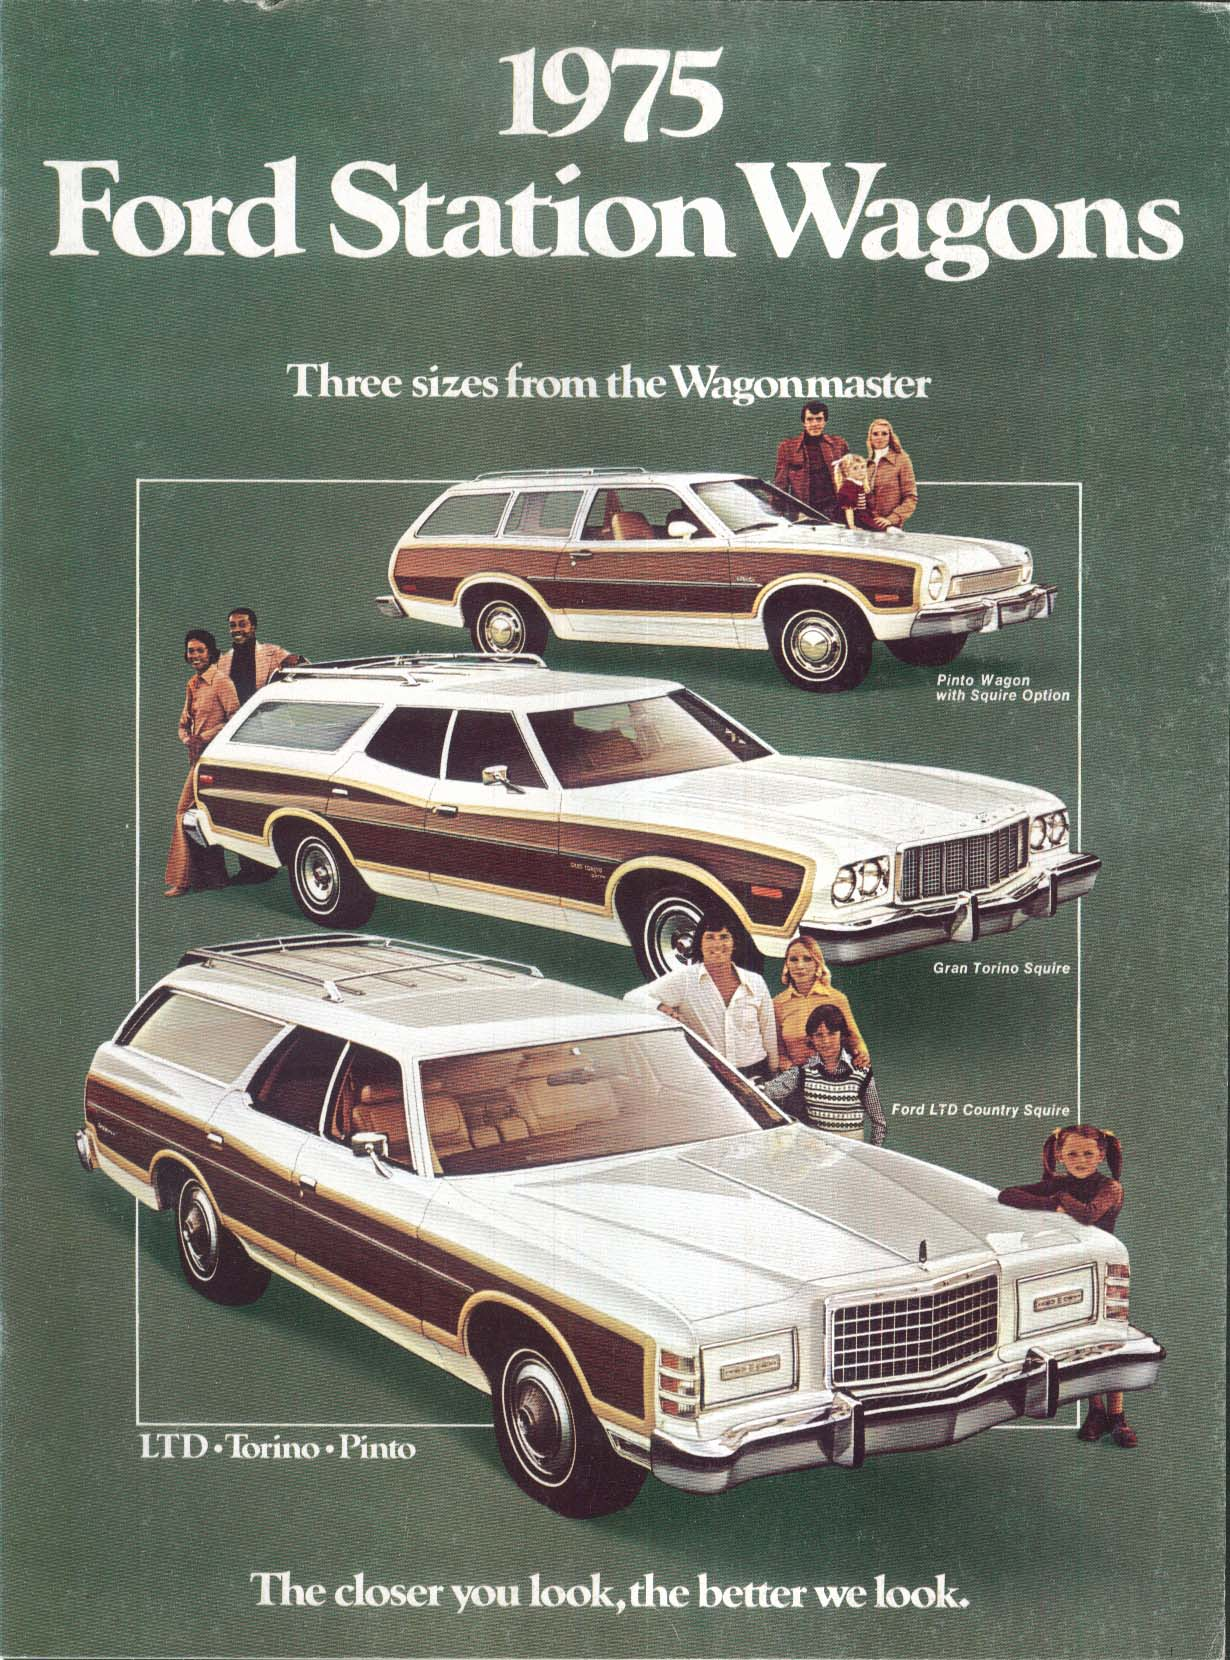 Image for 1975 Ford Station Wagons sales brochure: LTD Torino Pinto